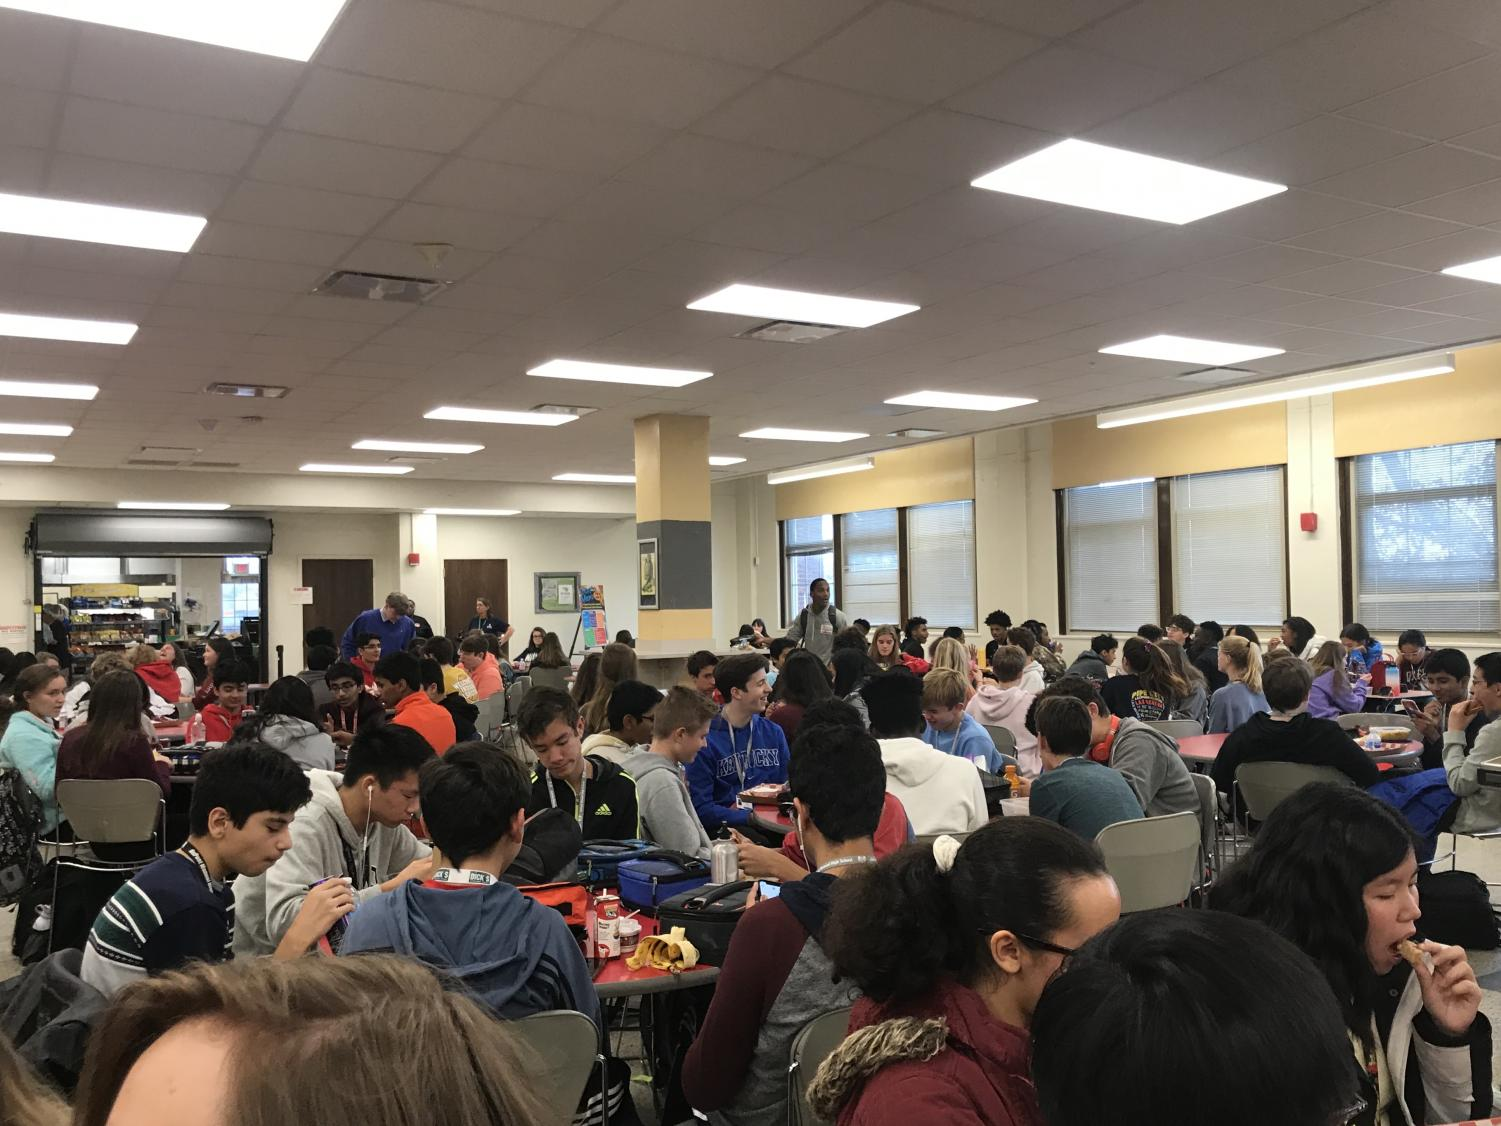 Students eat during red fifth lunch. Photo by Molly Gregory.